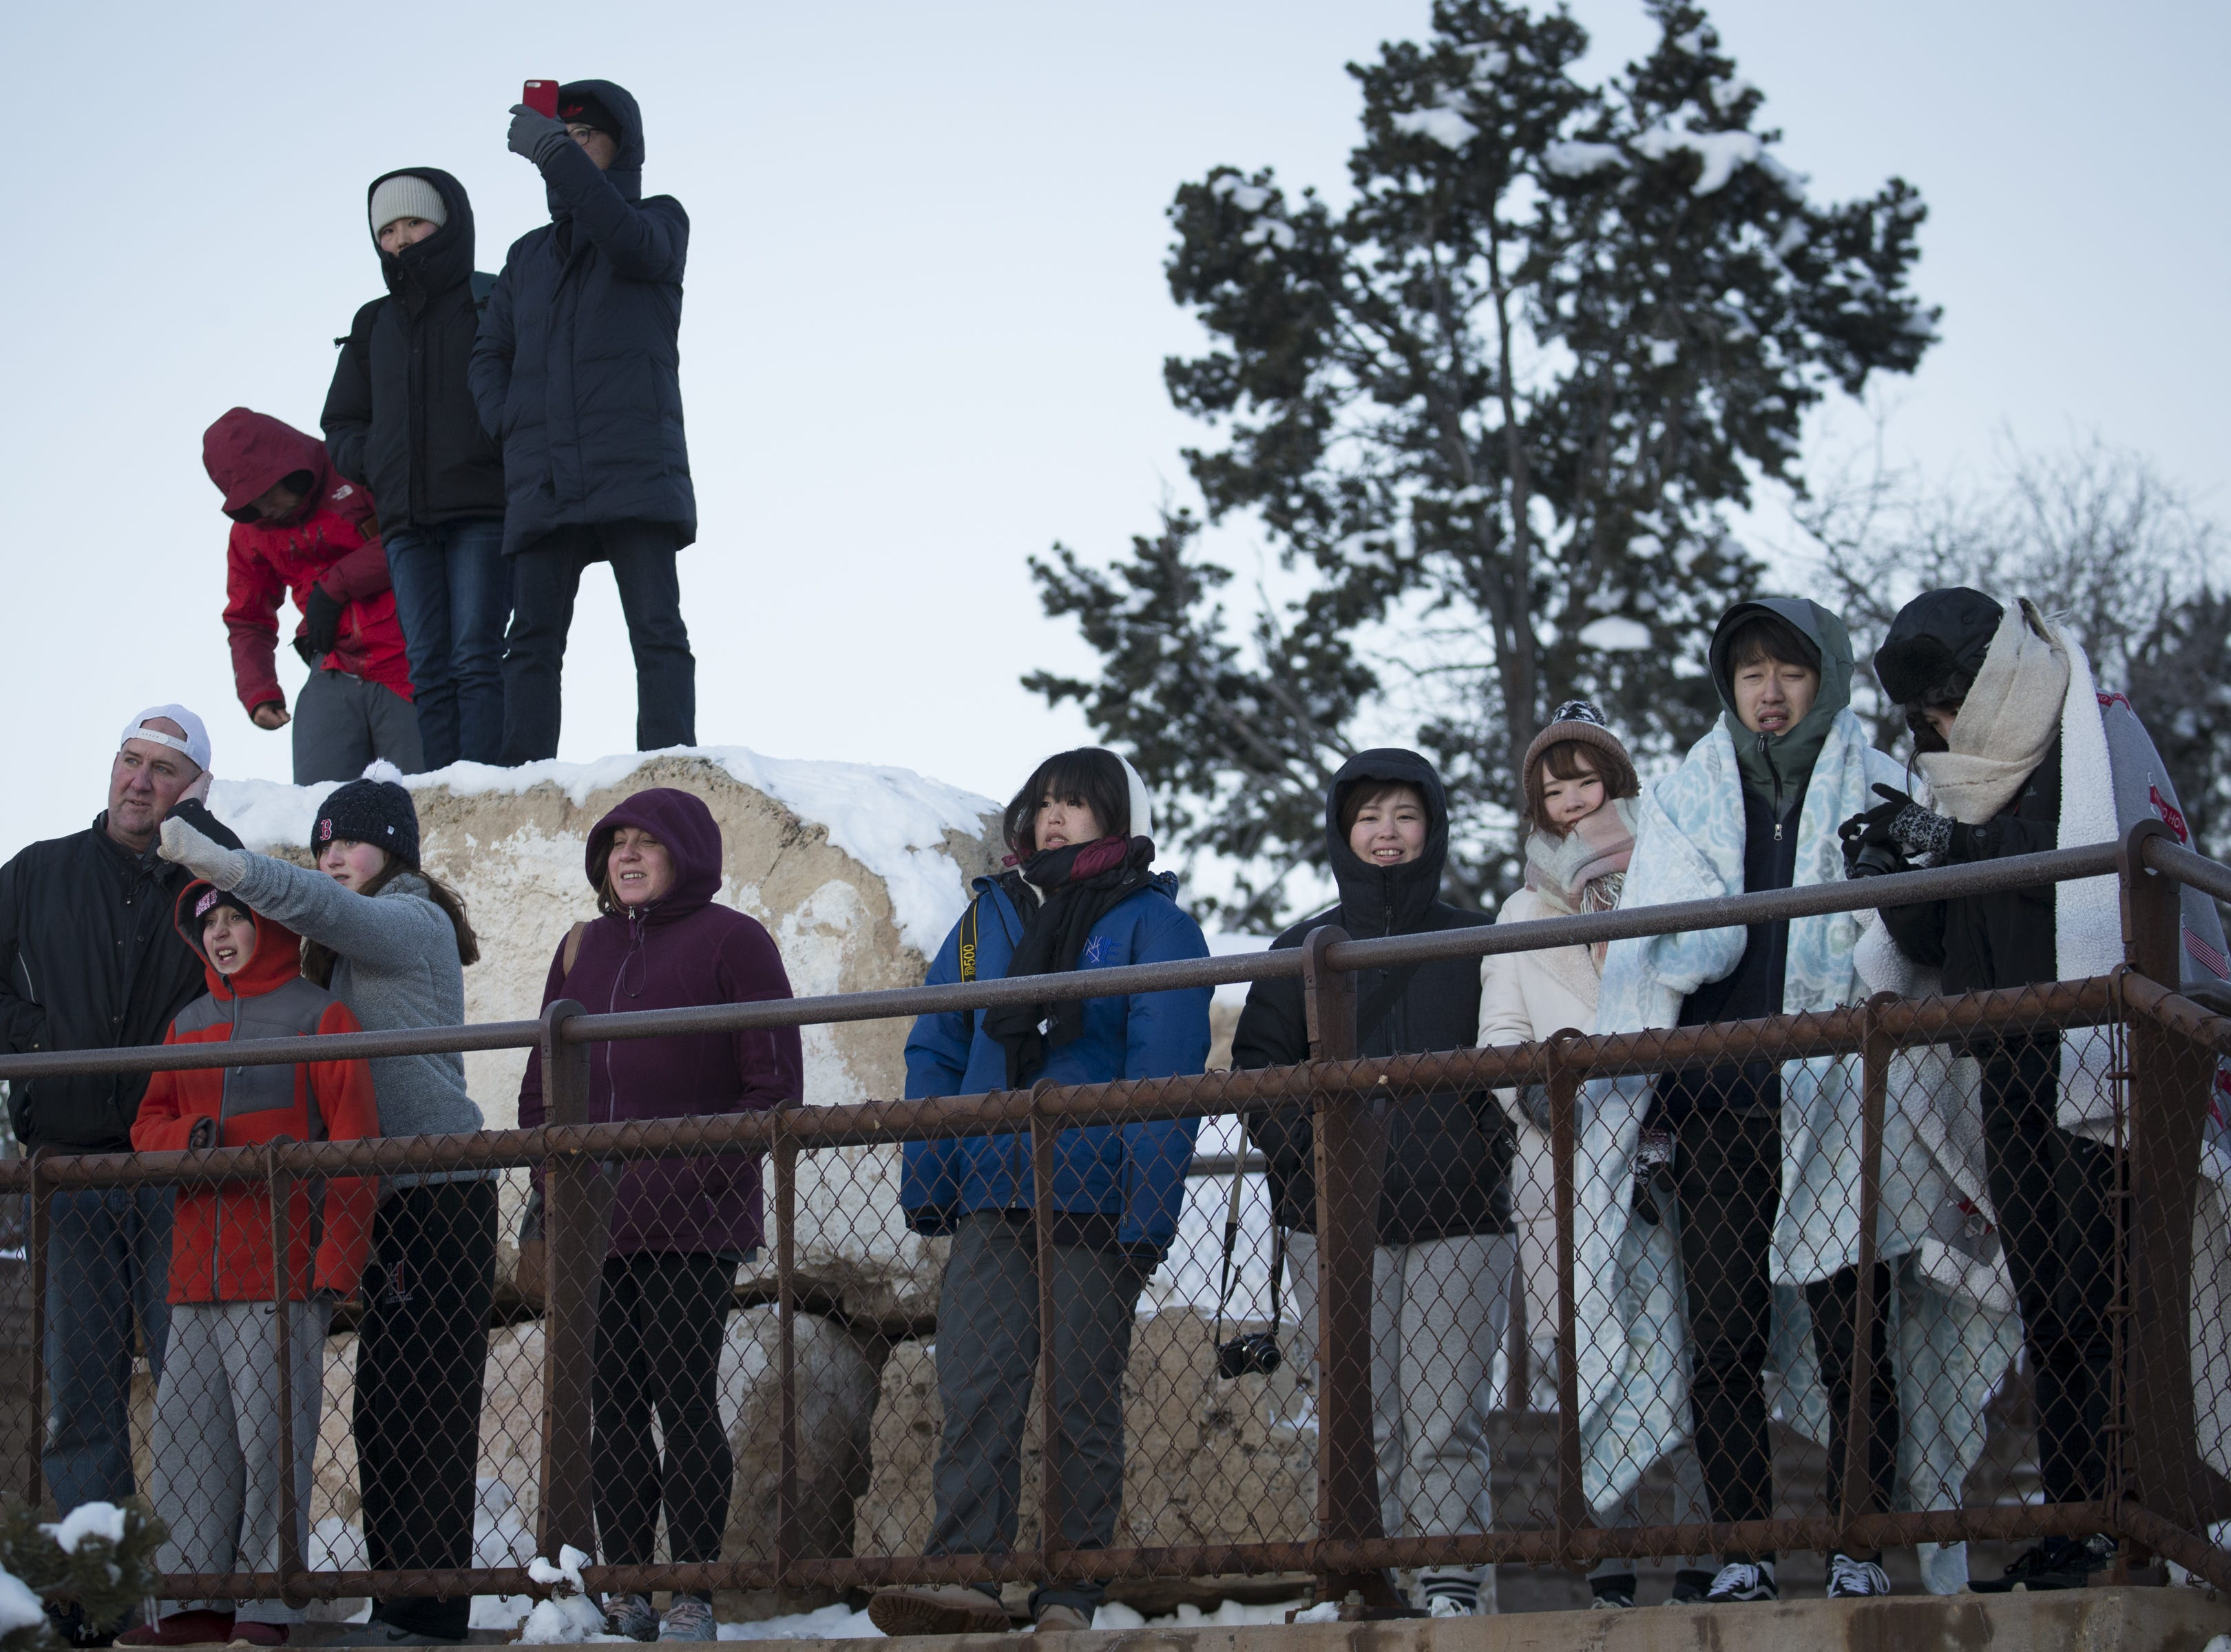 Visitors bundled up to view the sunrise at Mather Point on Feb. 20, 2019, at the South Rim of Grand Canyon National Park, Arizona.